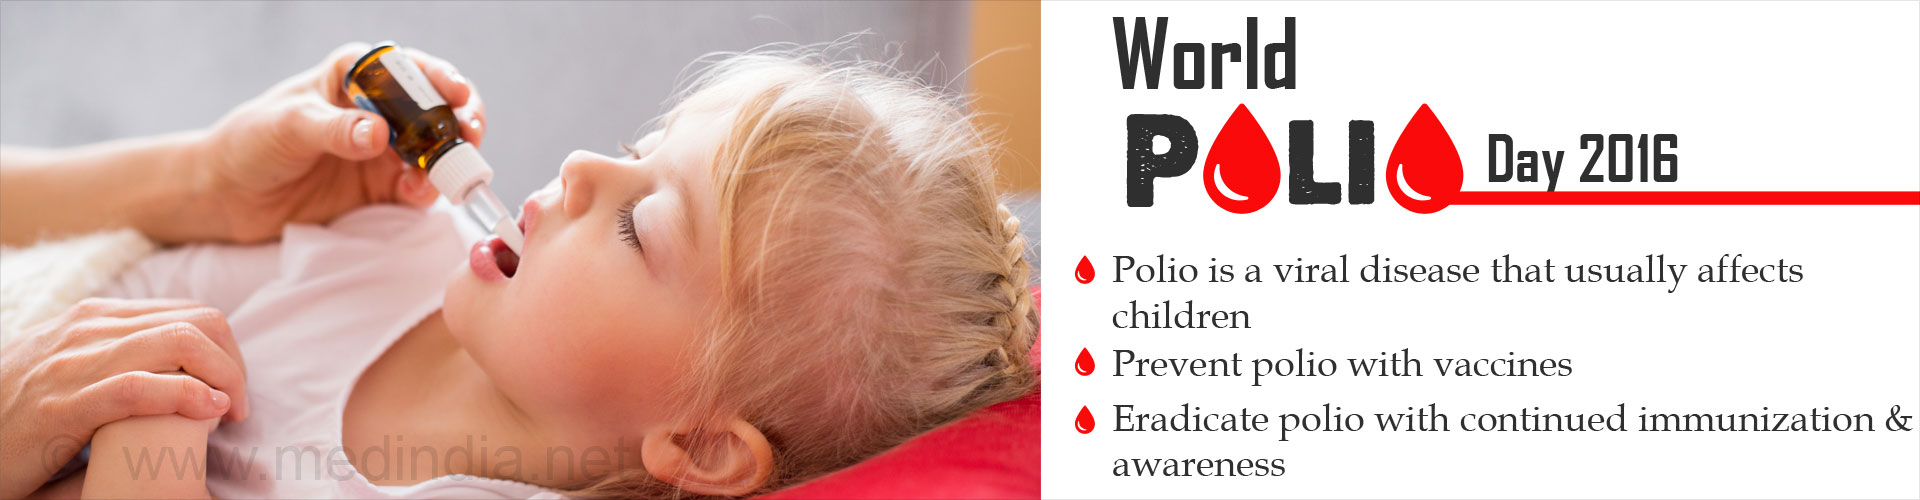 World Polio Day 2016: 'End Polio'